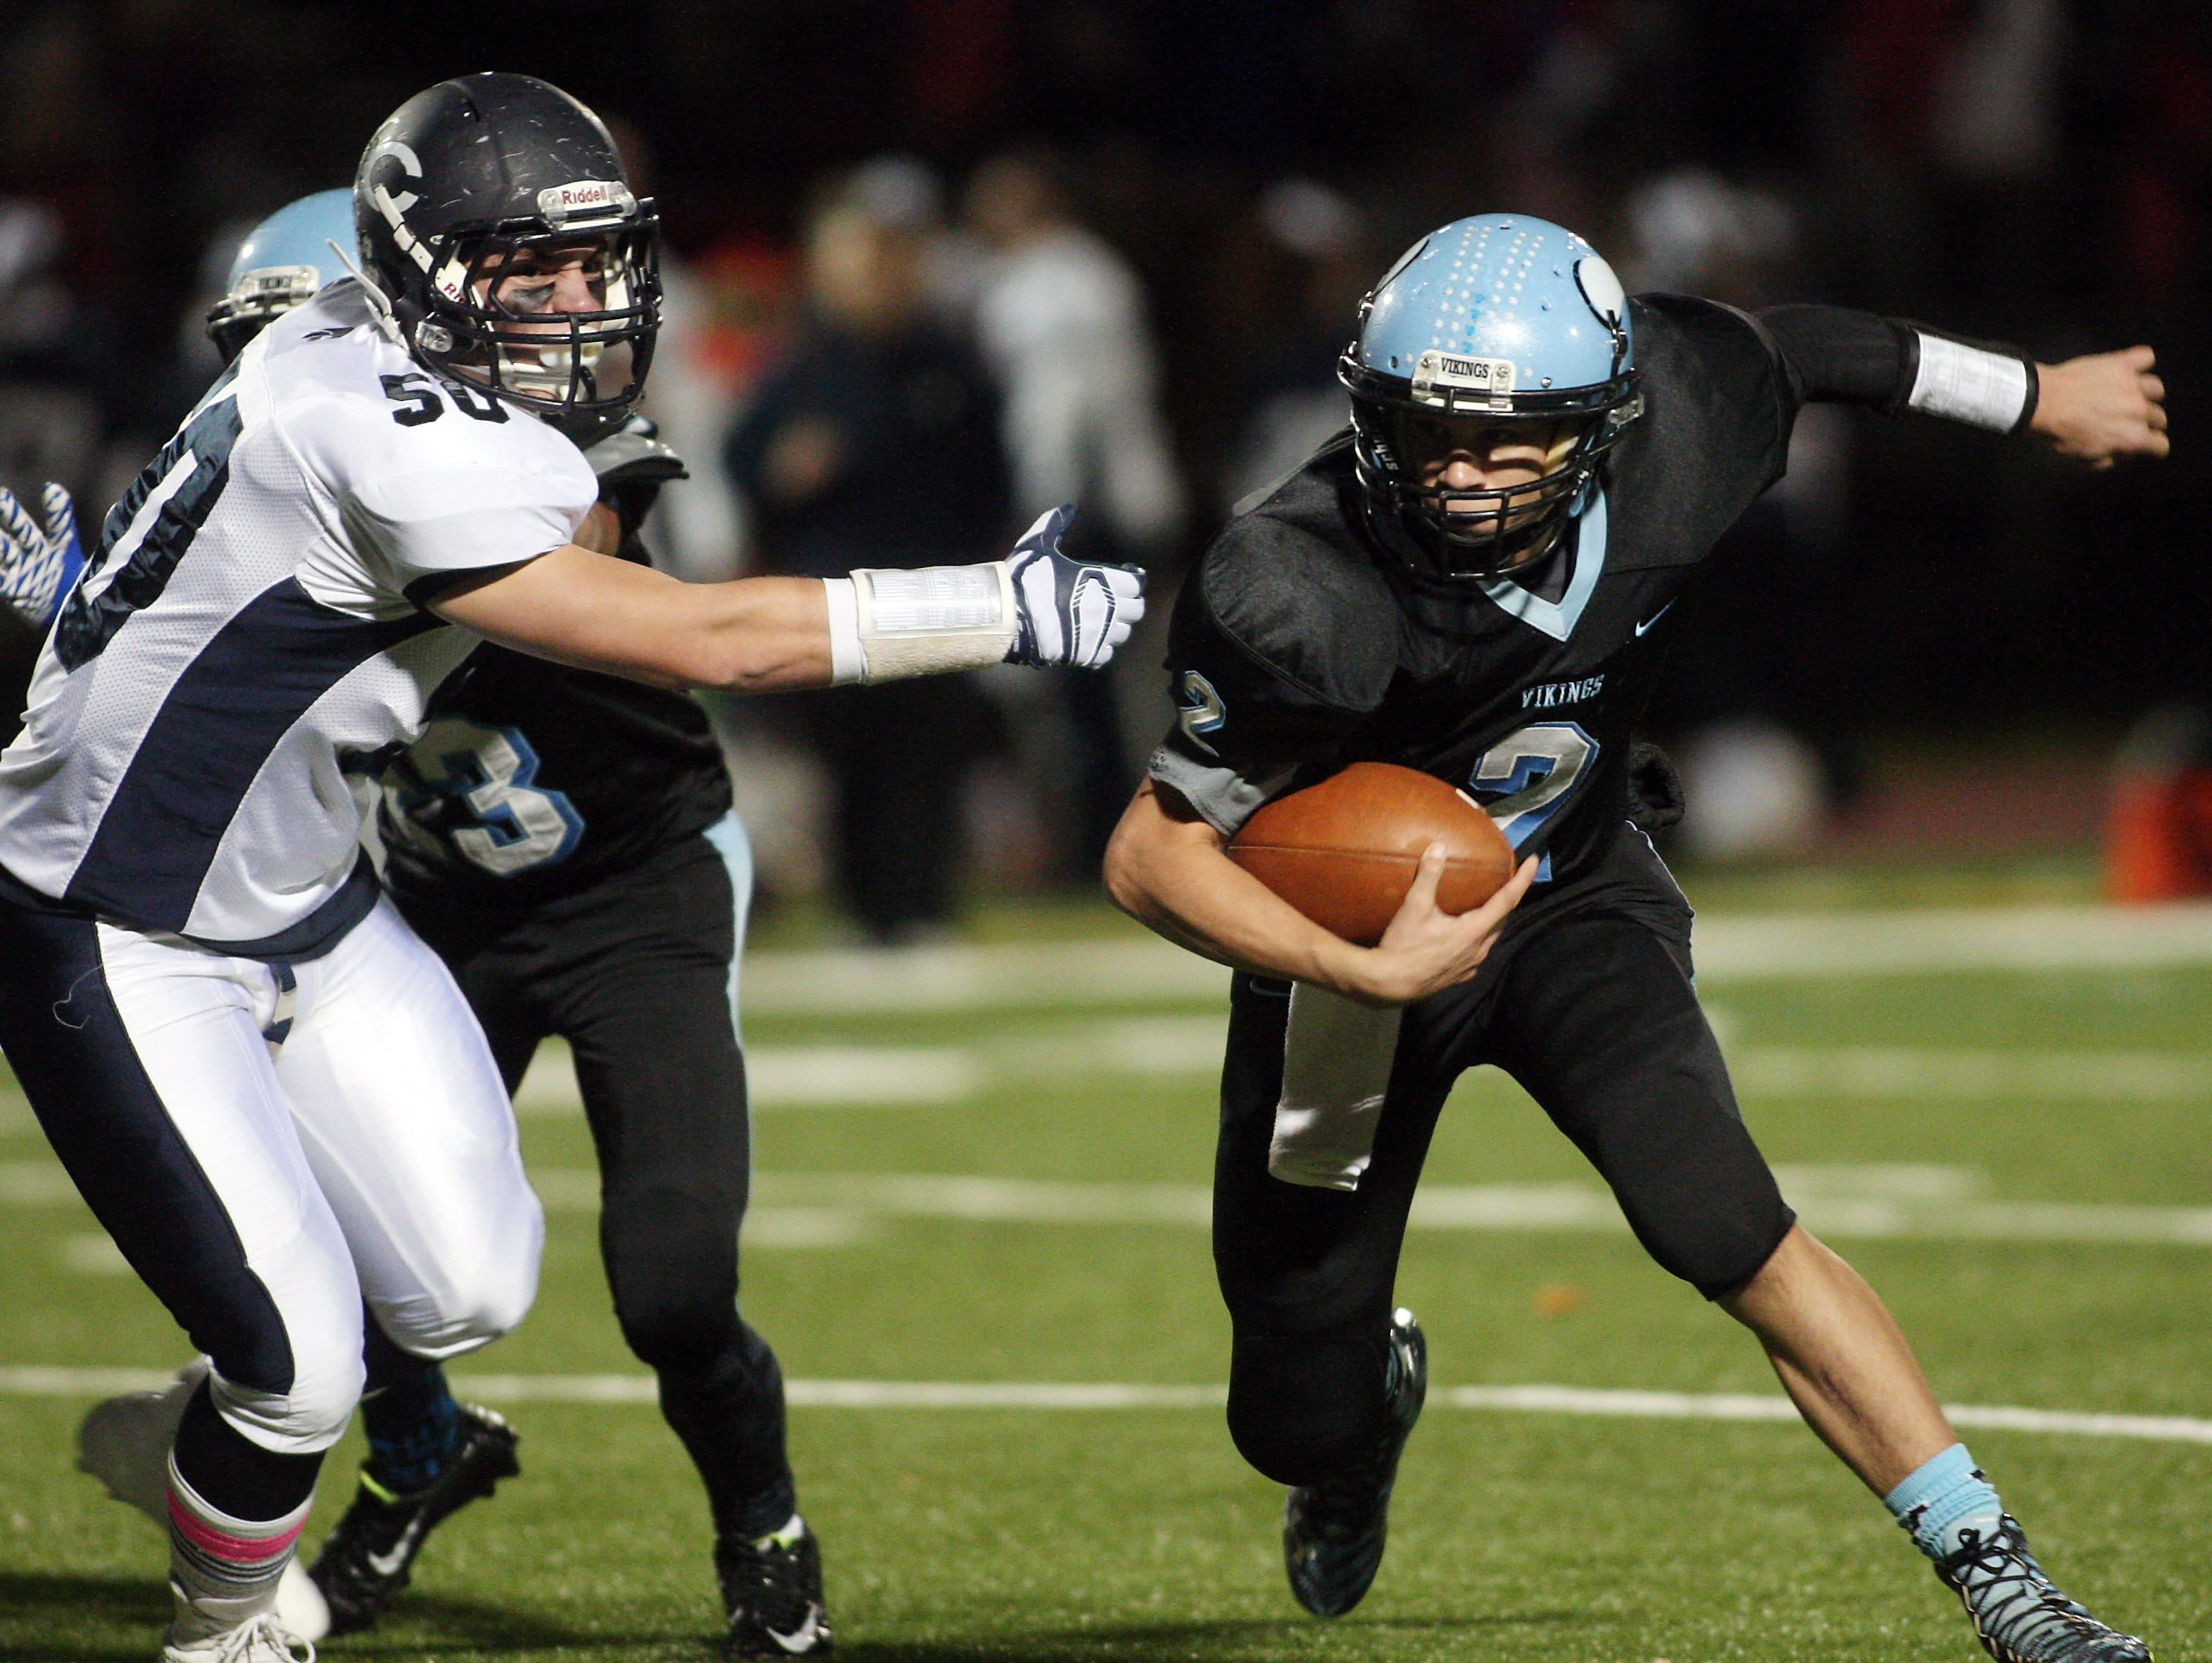 Parsippany Hills quarterback Nick Verducci runs to the end zone on a keeper vs. Chatham in a showdown with playoff implications. October 30, 2015, Parsippany, NJ.